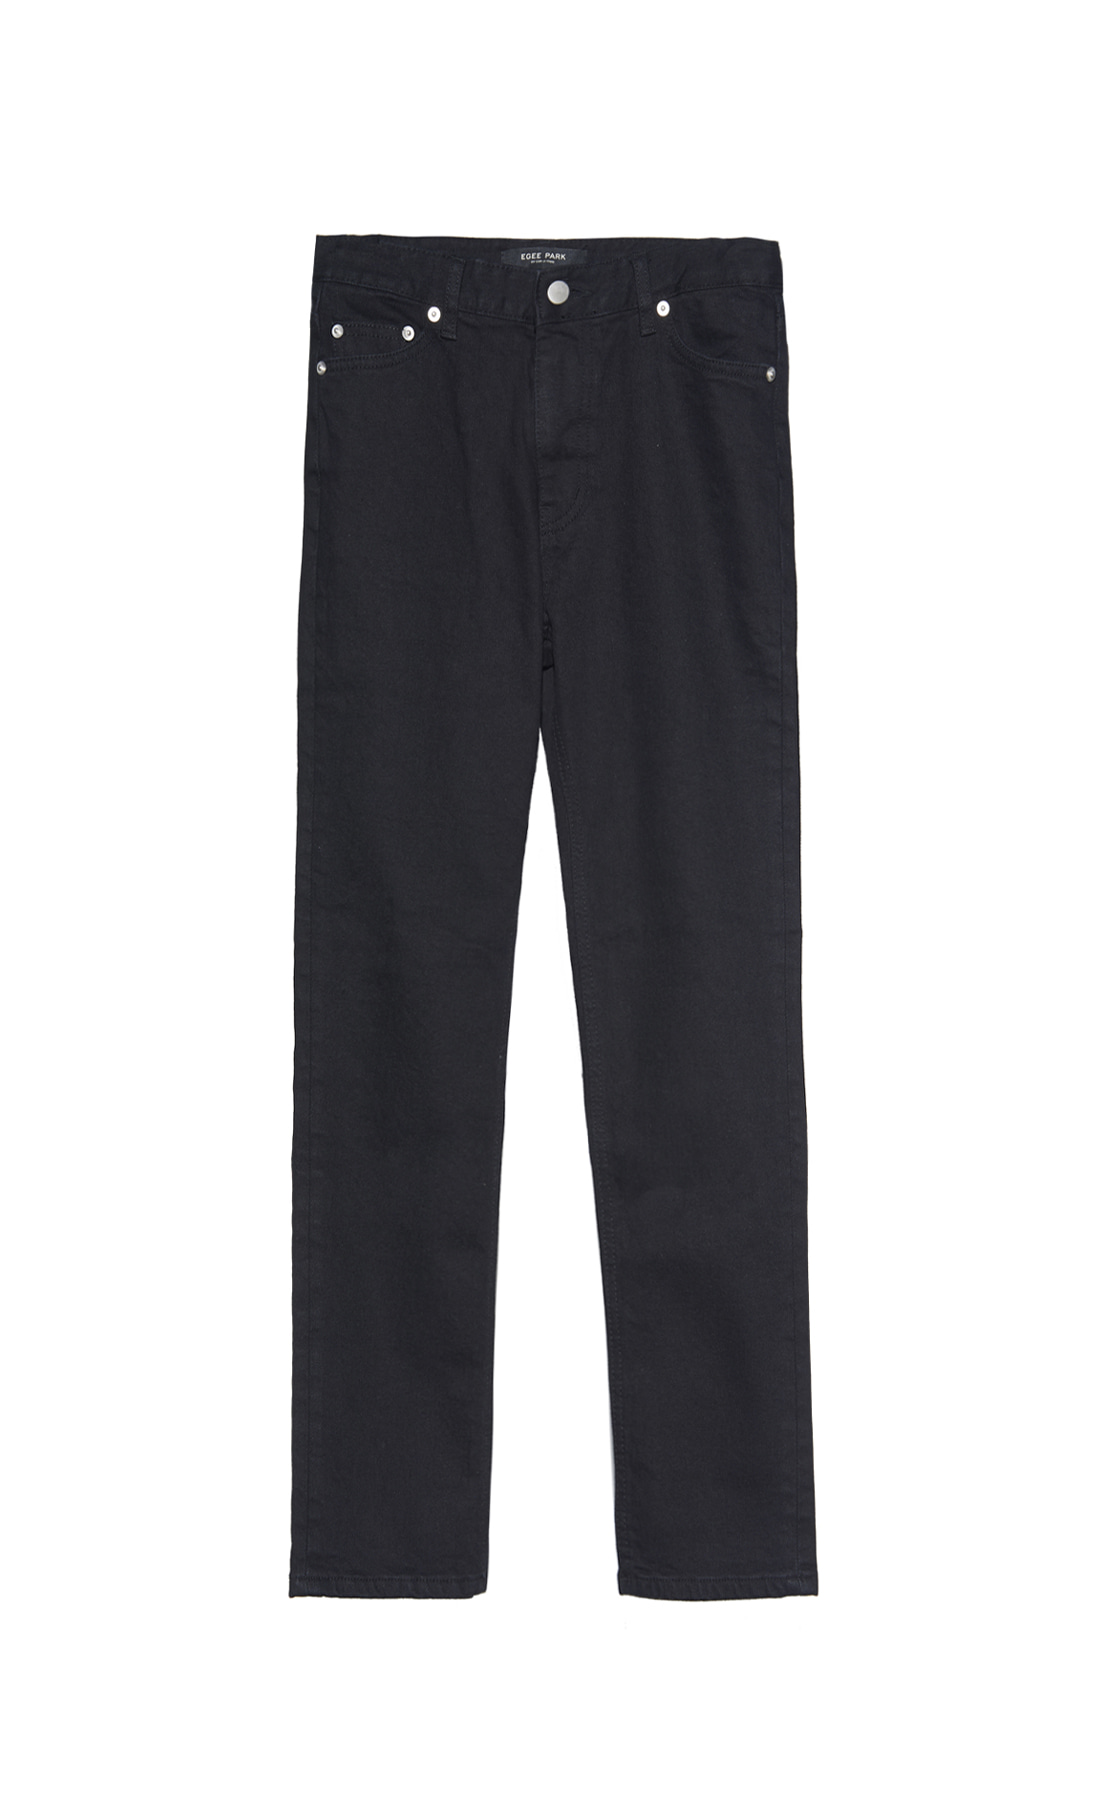 EG STRAIGHT-FIT WARM BLACK JEANS